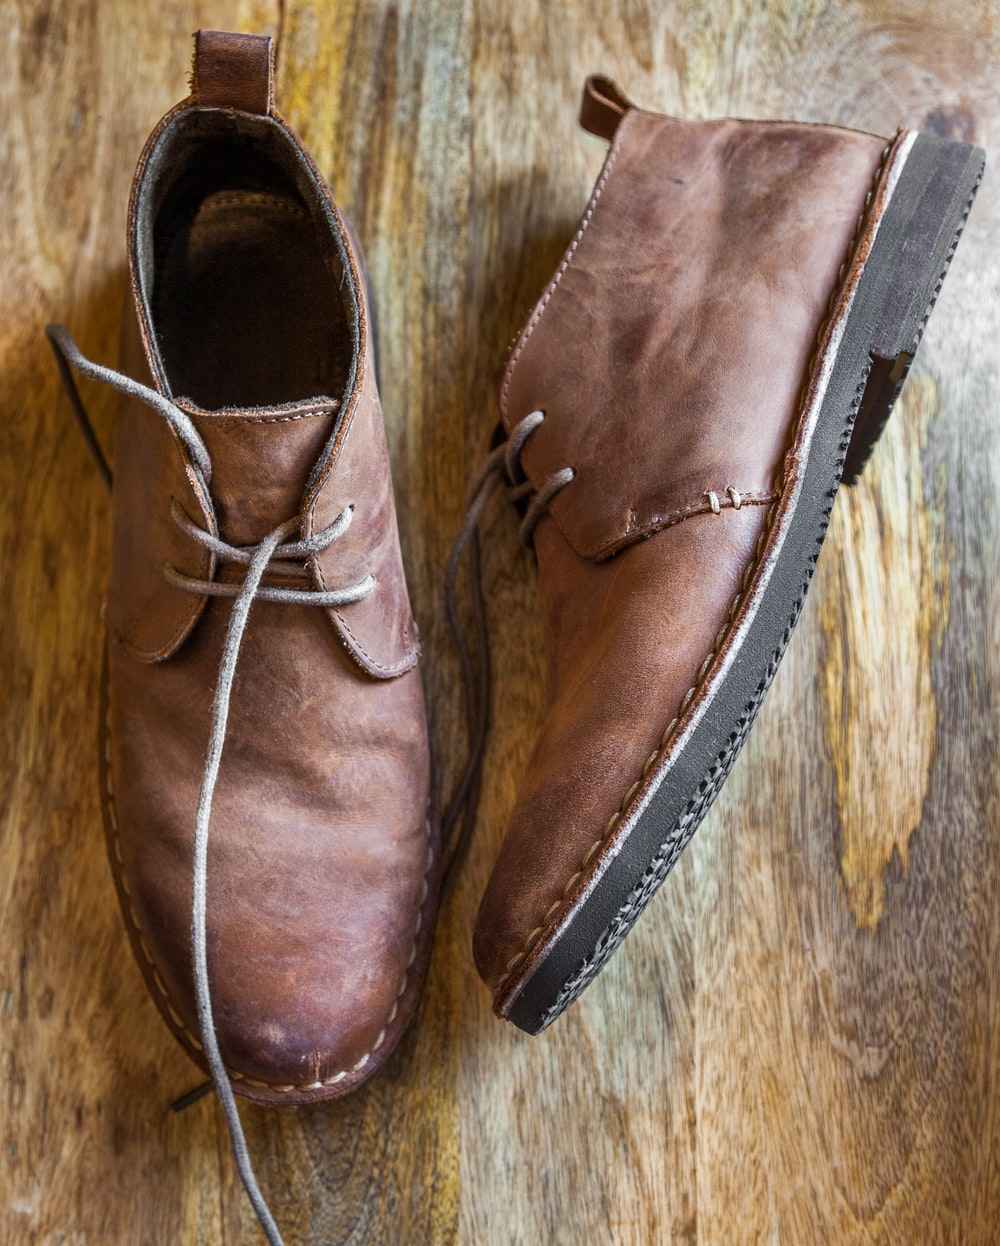 brown leather shoes on brown wooden surface